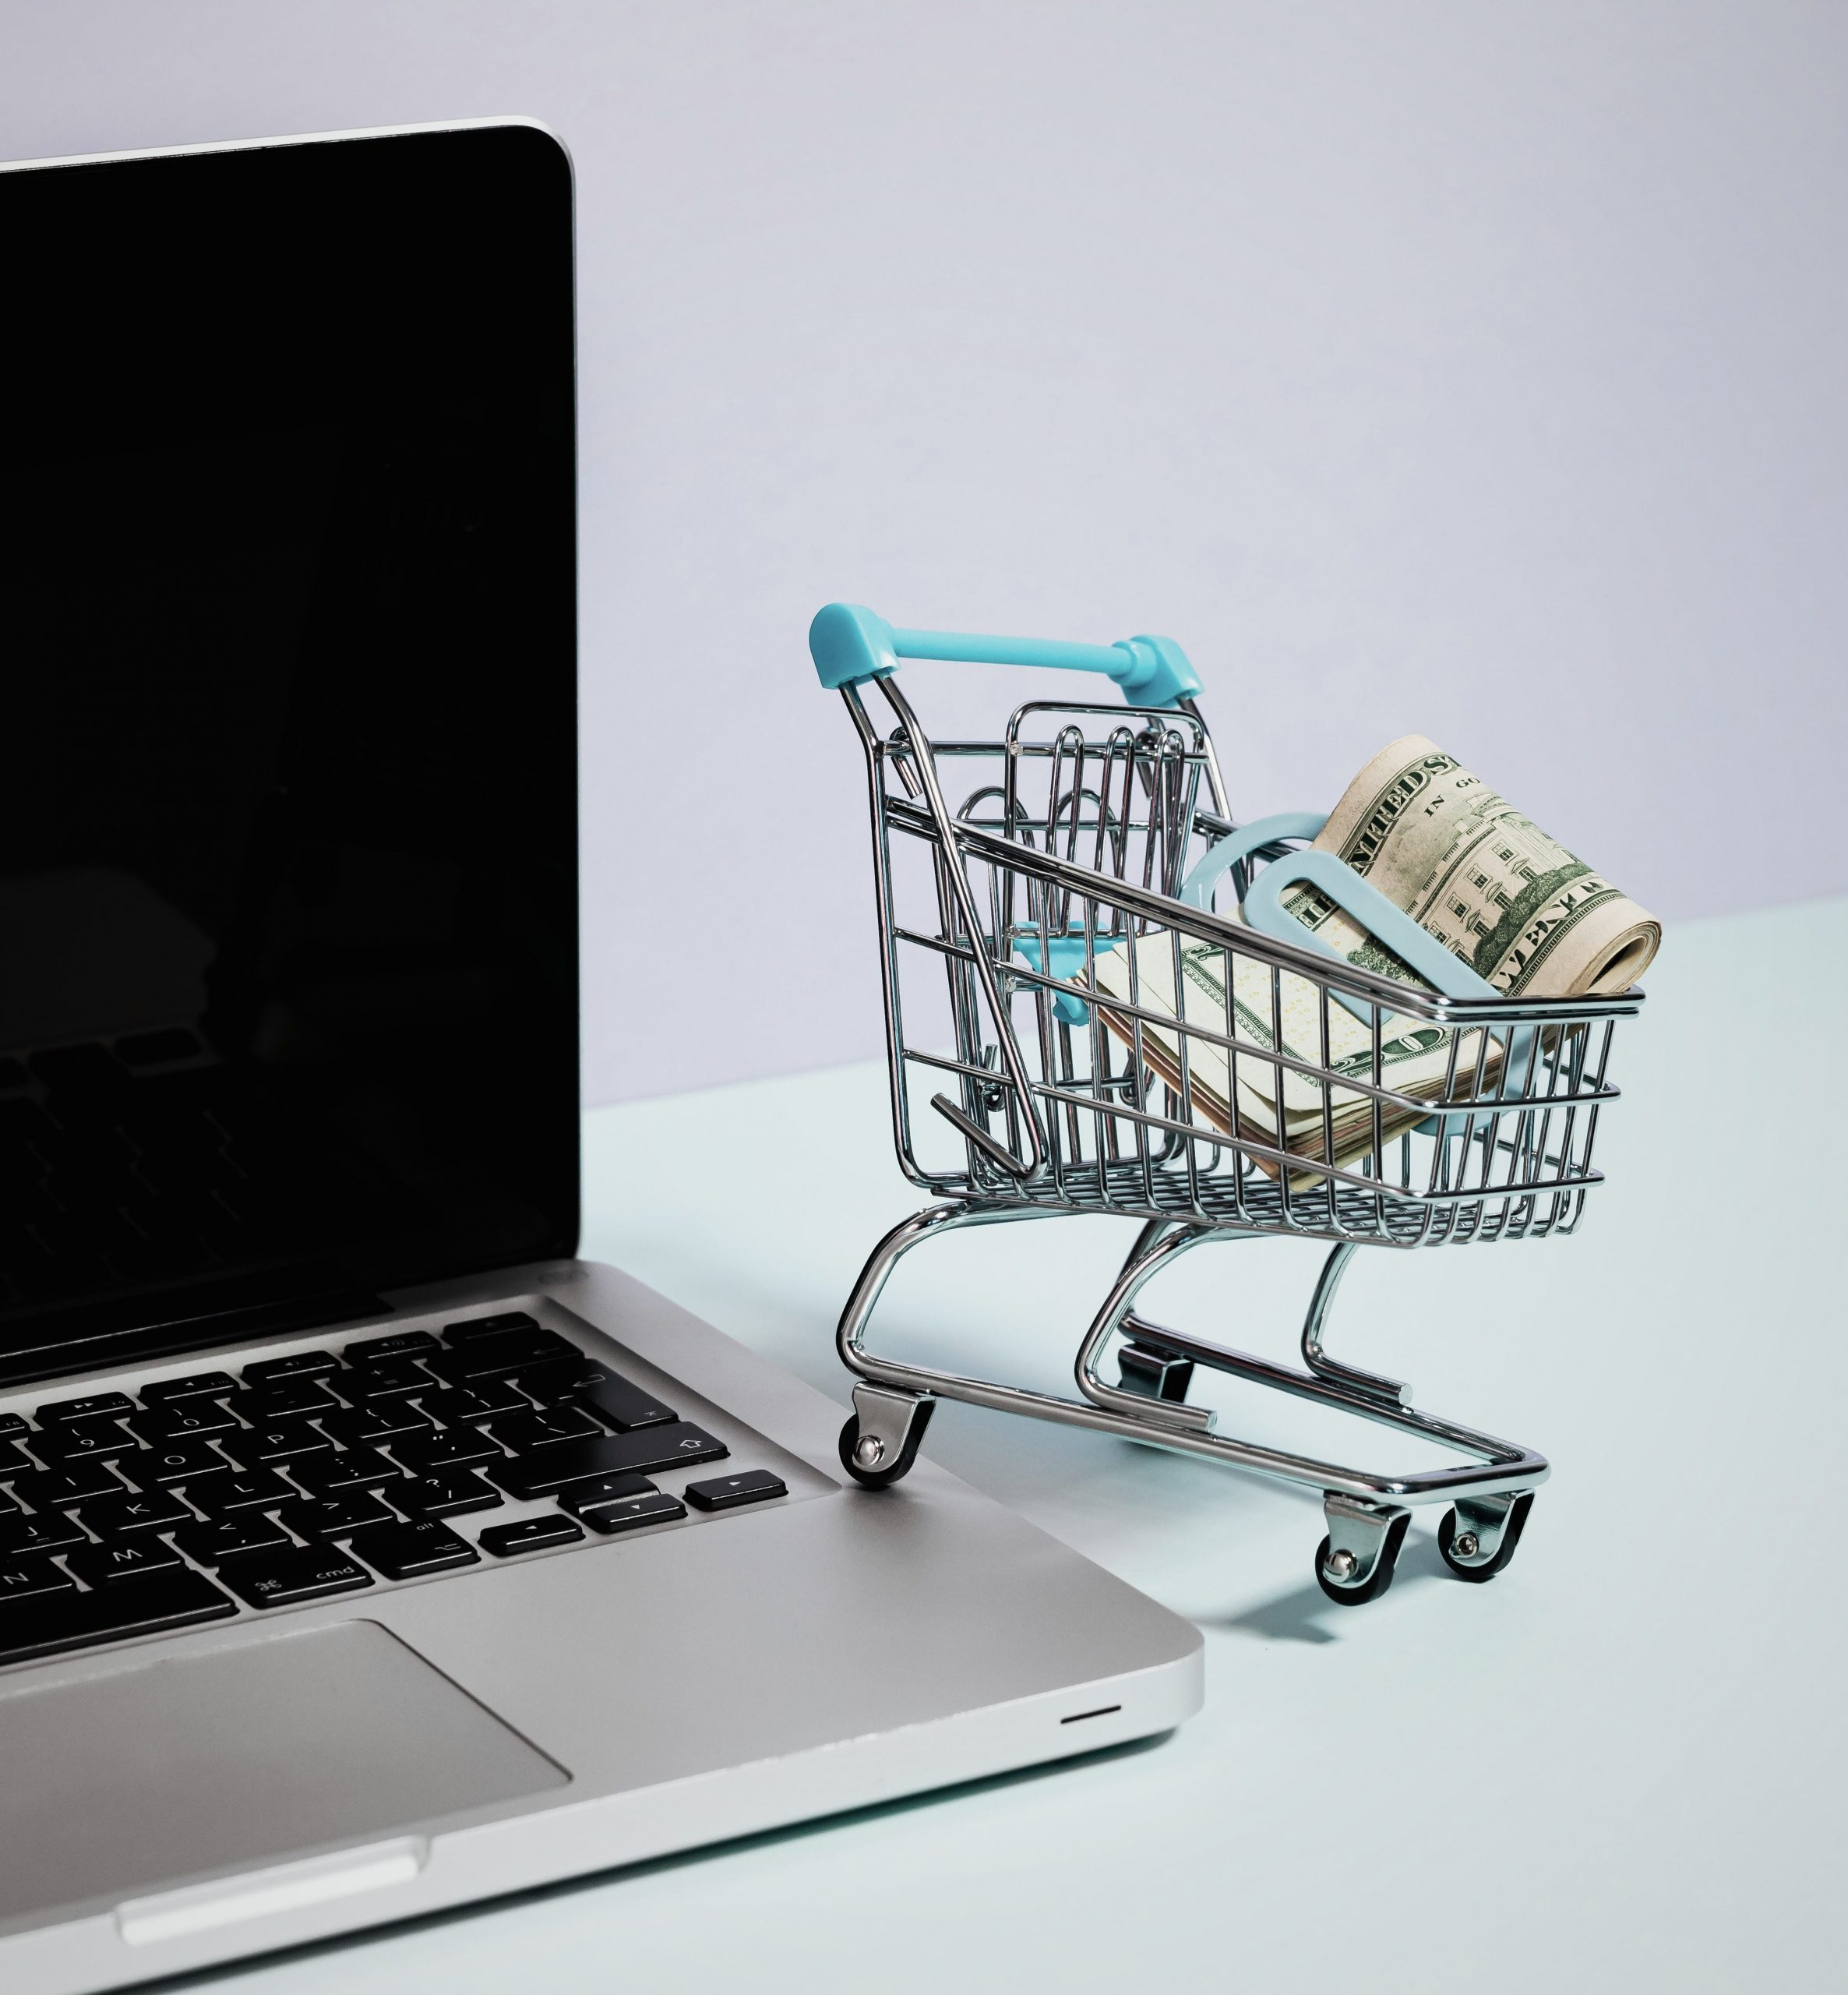 A laptop and and a mini-basket with money